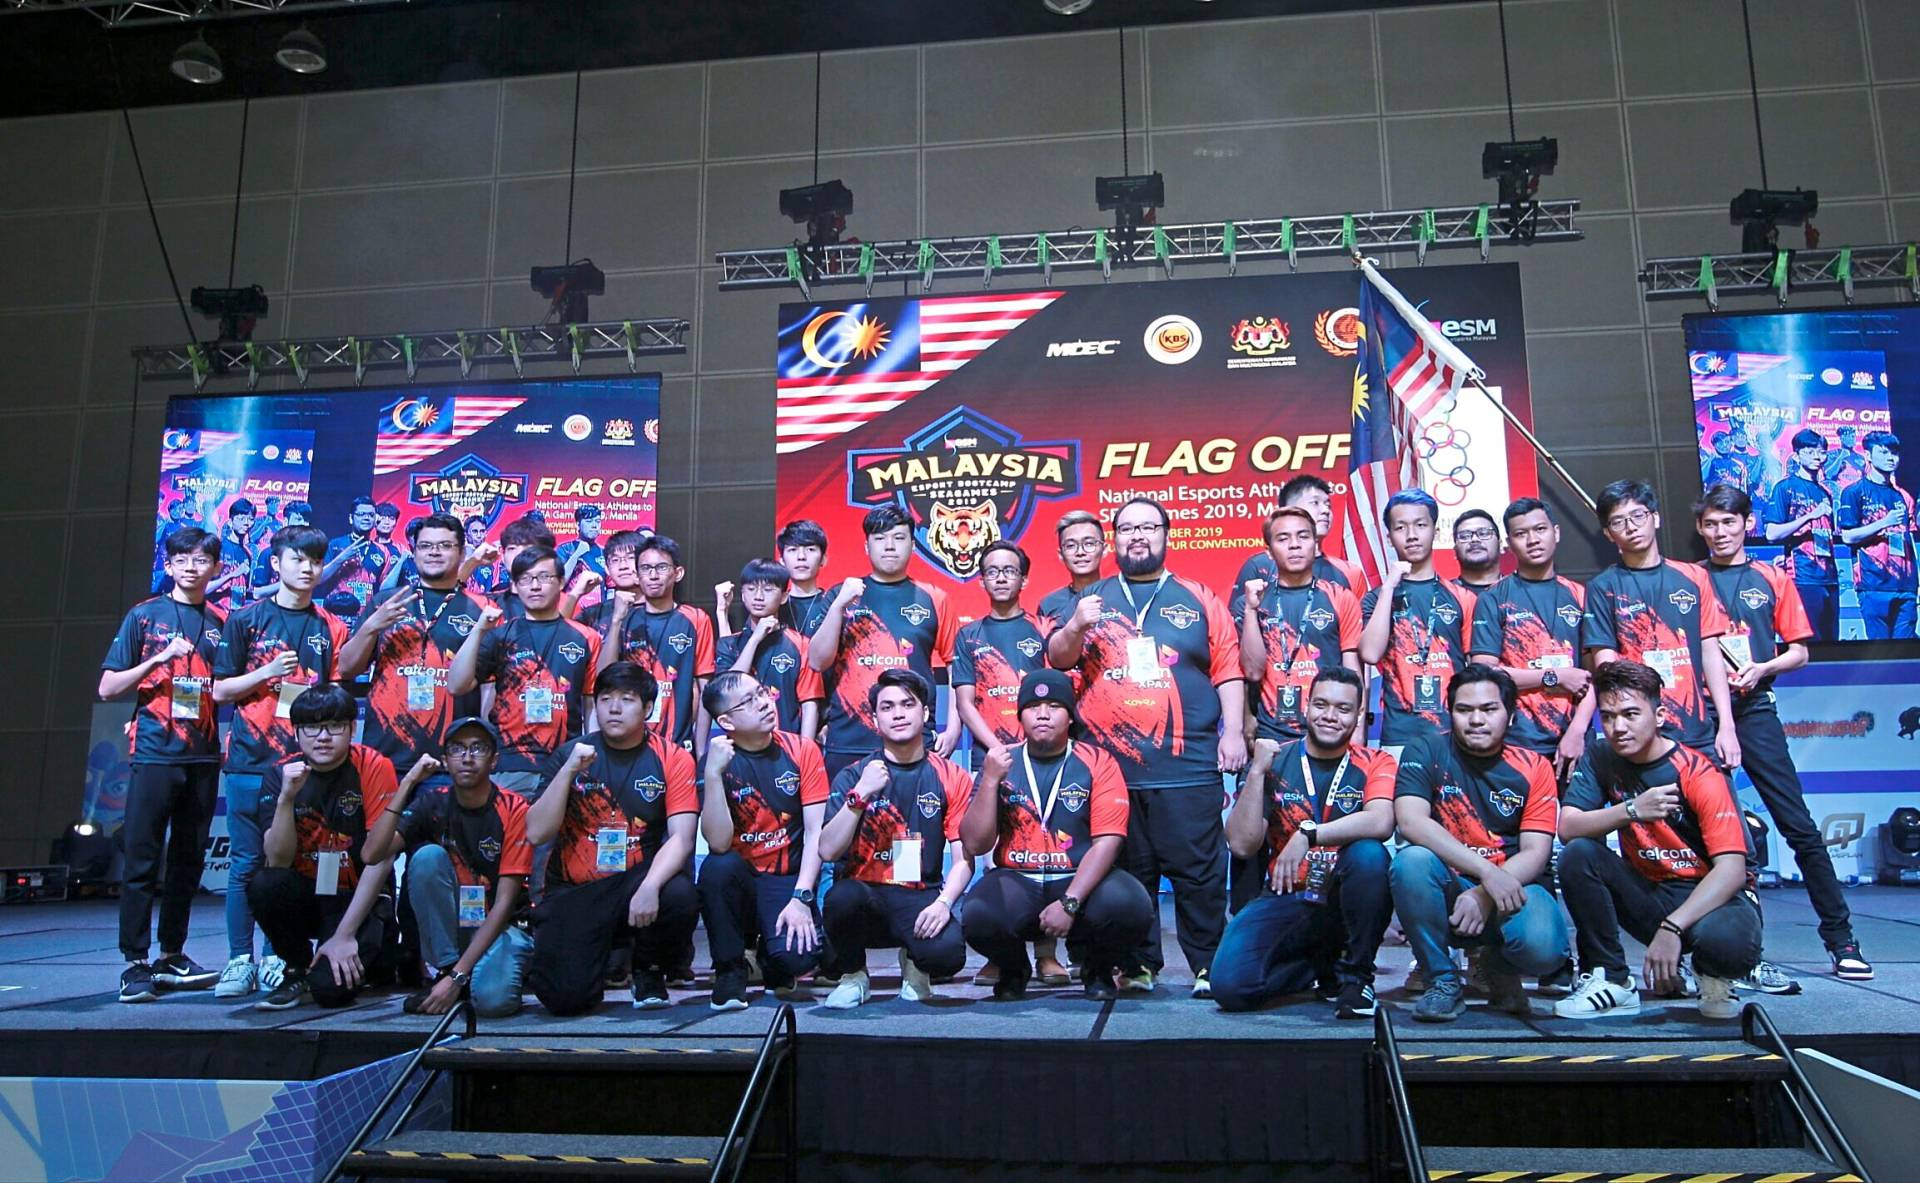 The eSports team representing Malaysia at SEA Games 2019 will compete in six medal events in Manila. — AZMAN GHANI/The Star